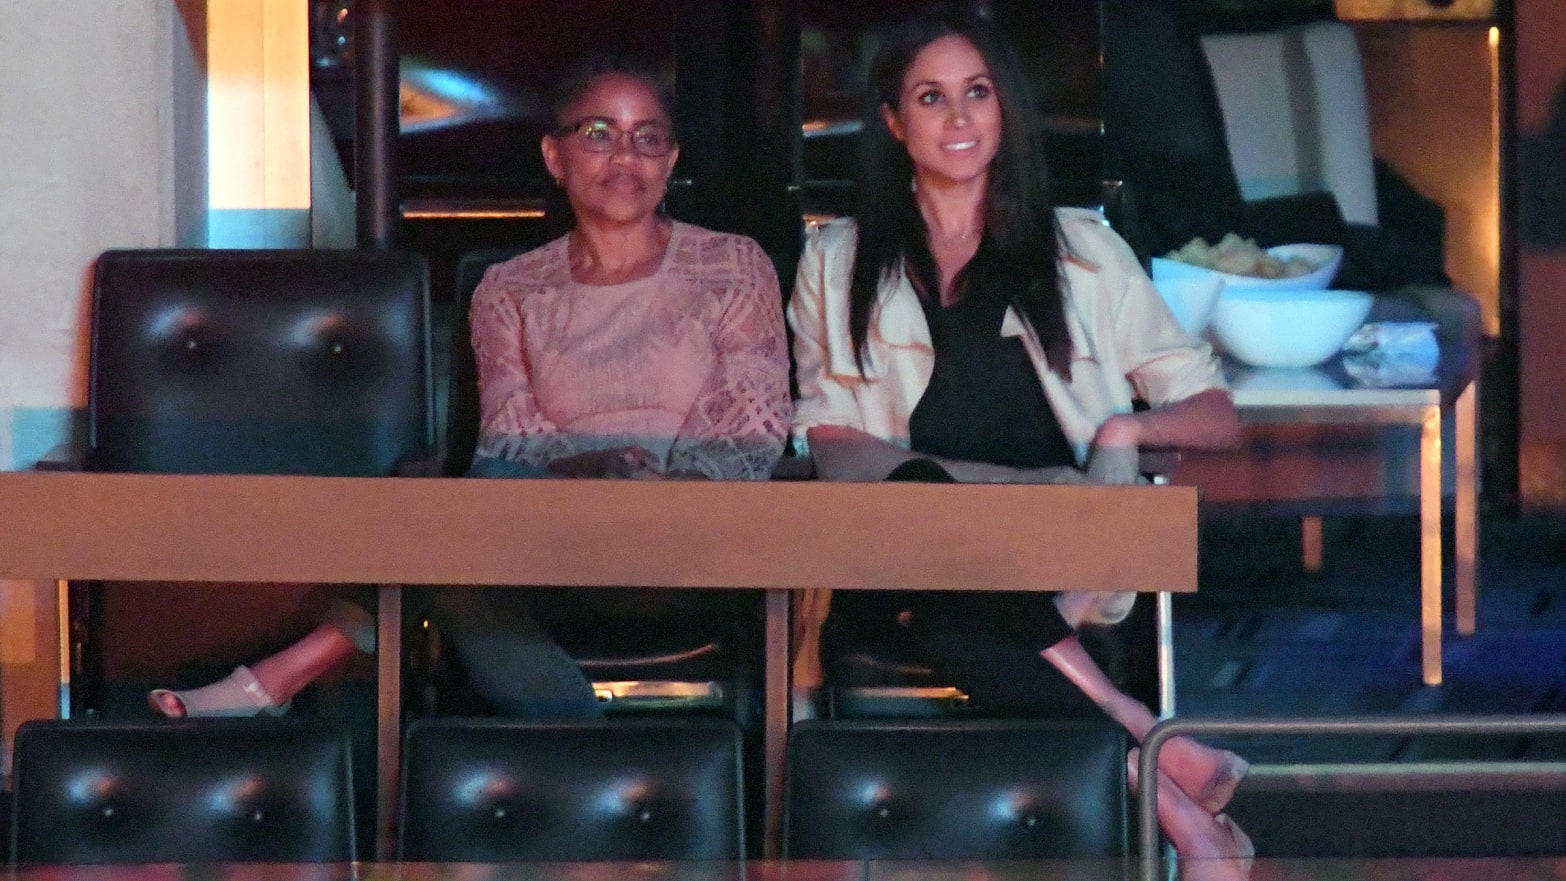 Doria Radlan and Meghan Markle are seen at the Closing Ceremony on day 8 of the Invictus Games Toronto 2017 at the Air Canada Centre